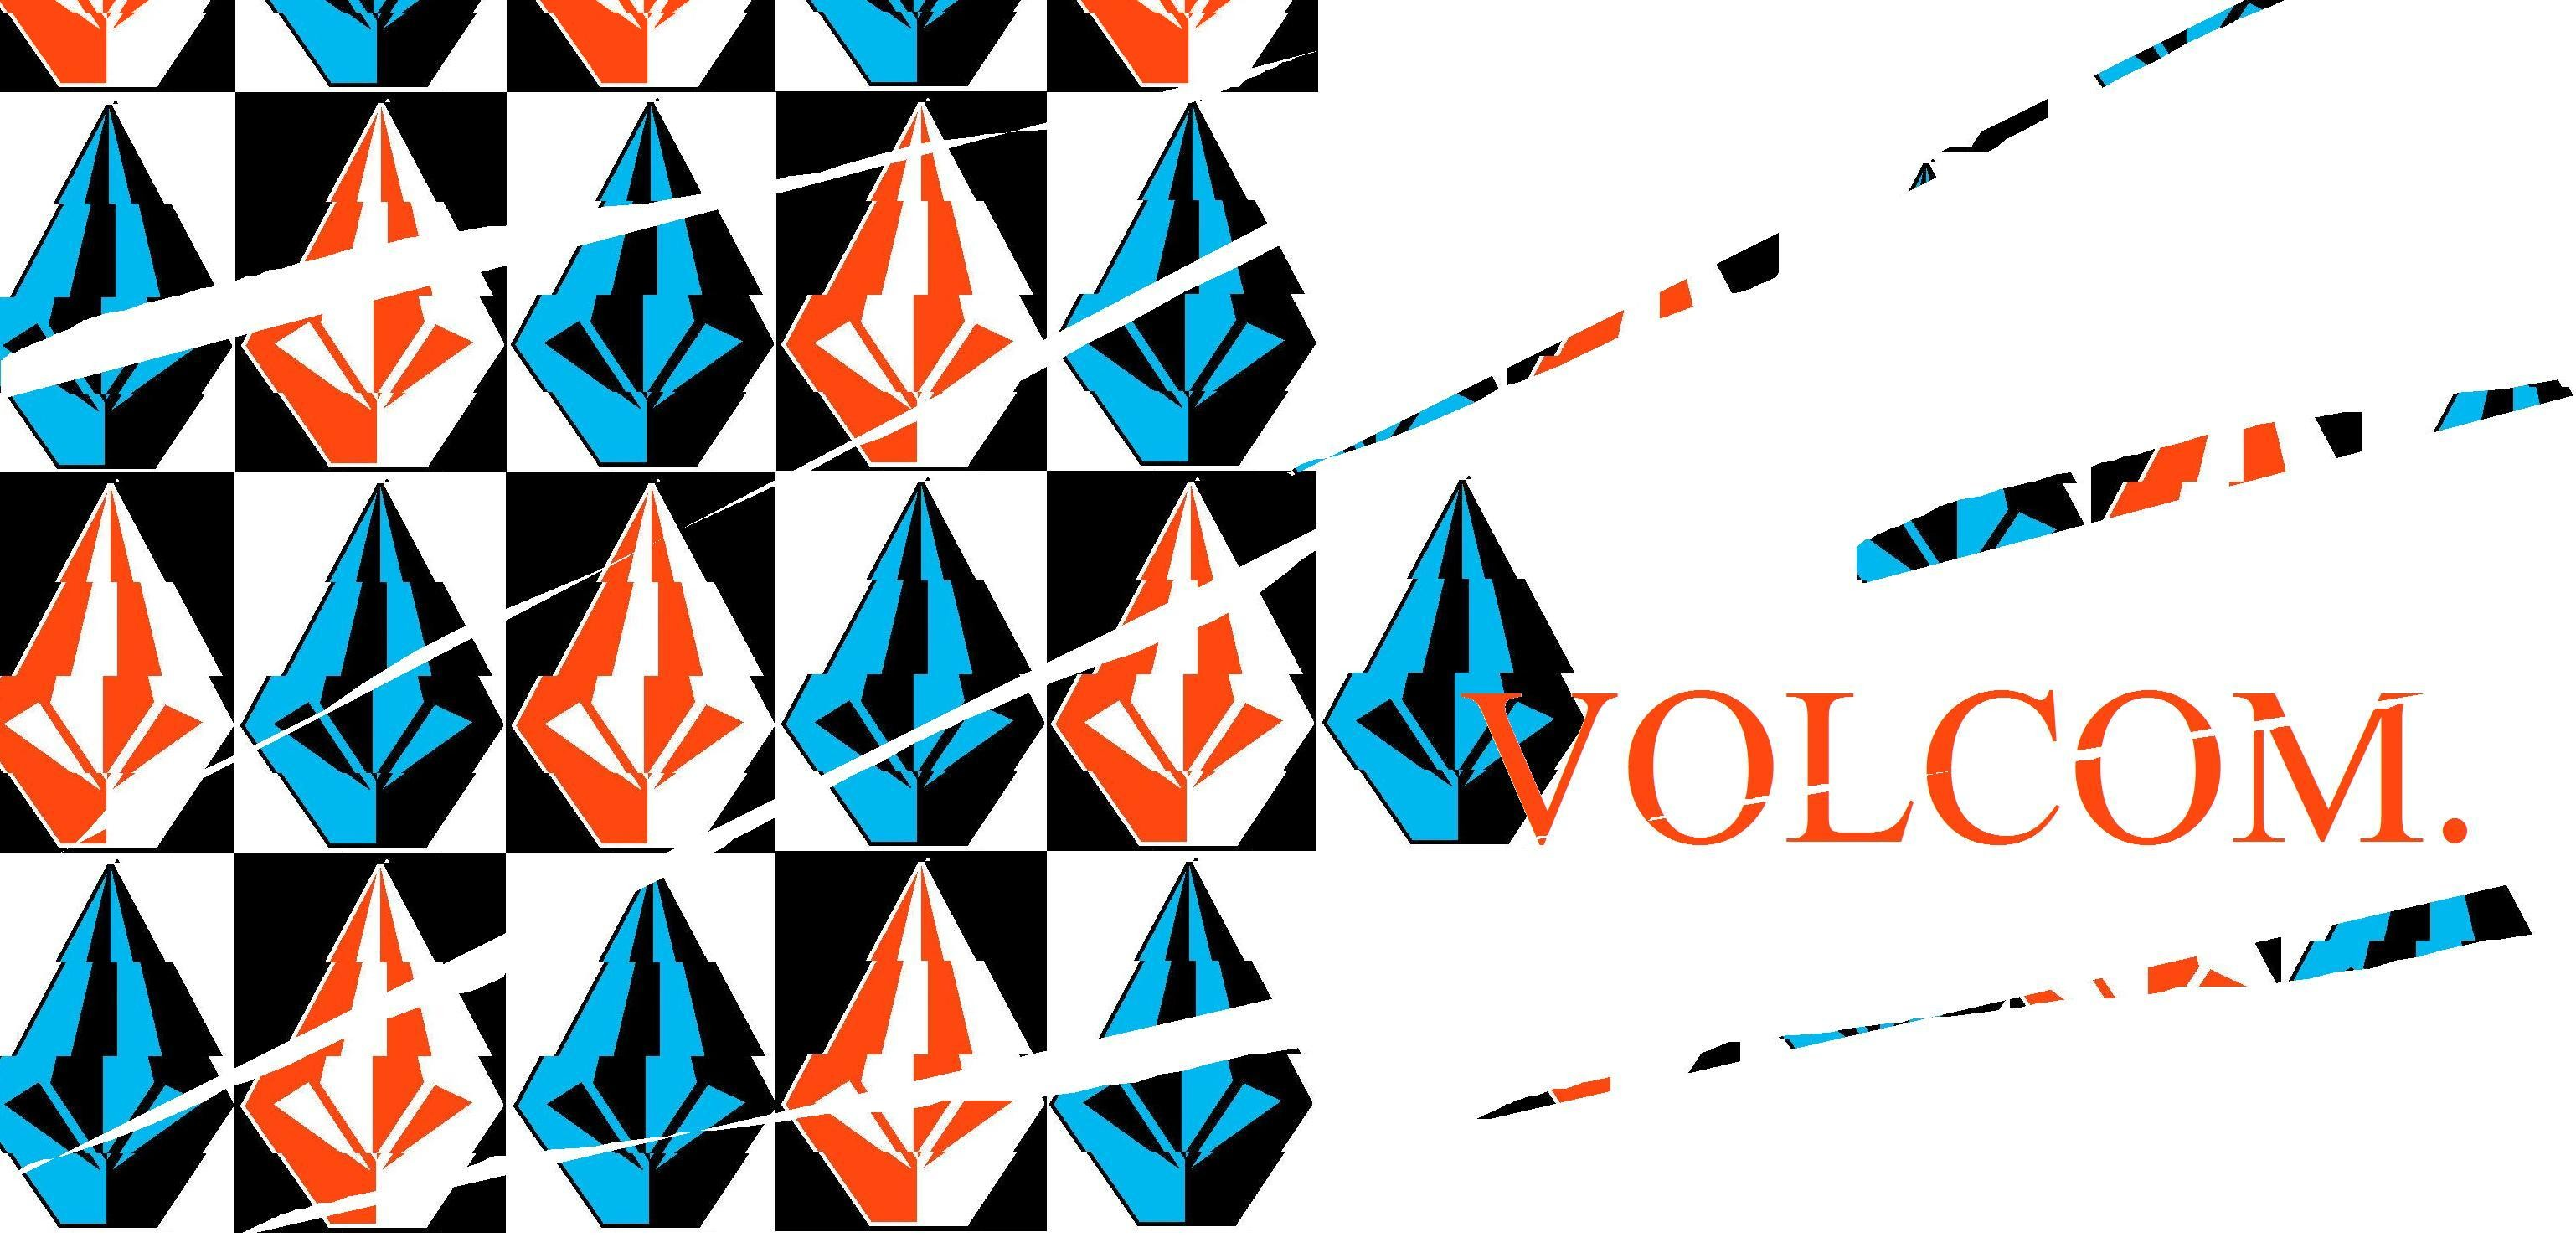 Res: 3076x1502, Volcom Stone Wallpapers